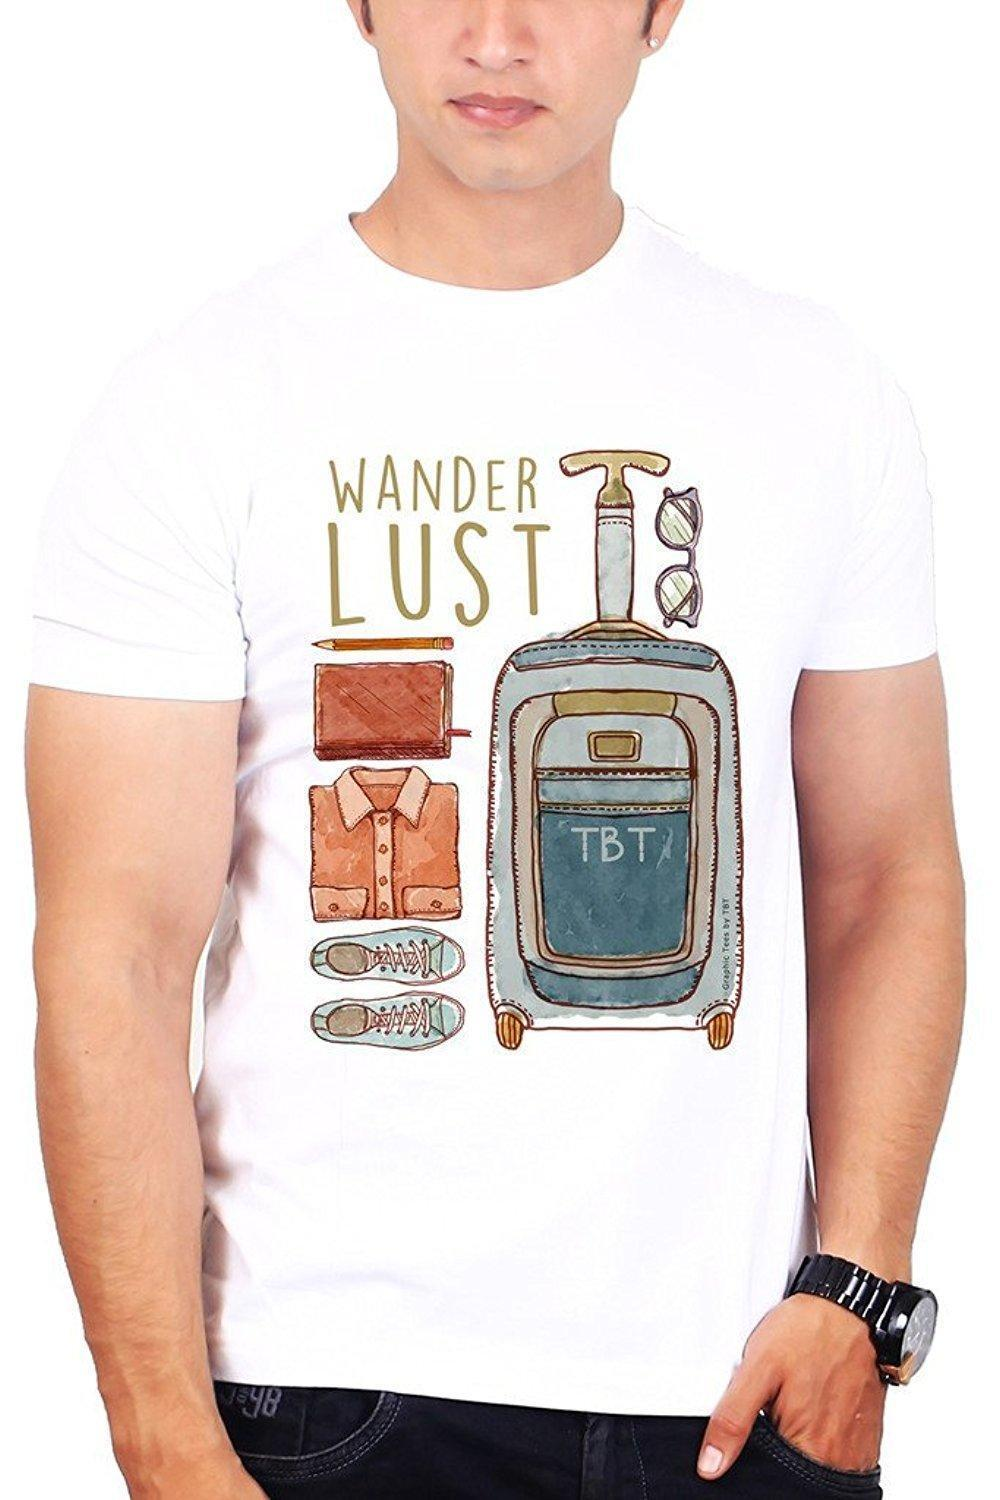 09f77b62 Cheap Tee Shirts Crew Neck Short Graphic Tees For Men Wanderlust Graphic  Mens Tees T Shirts And Shirts On T Shirts From Amesion81, $11.37| DHgate.Com